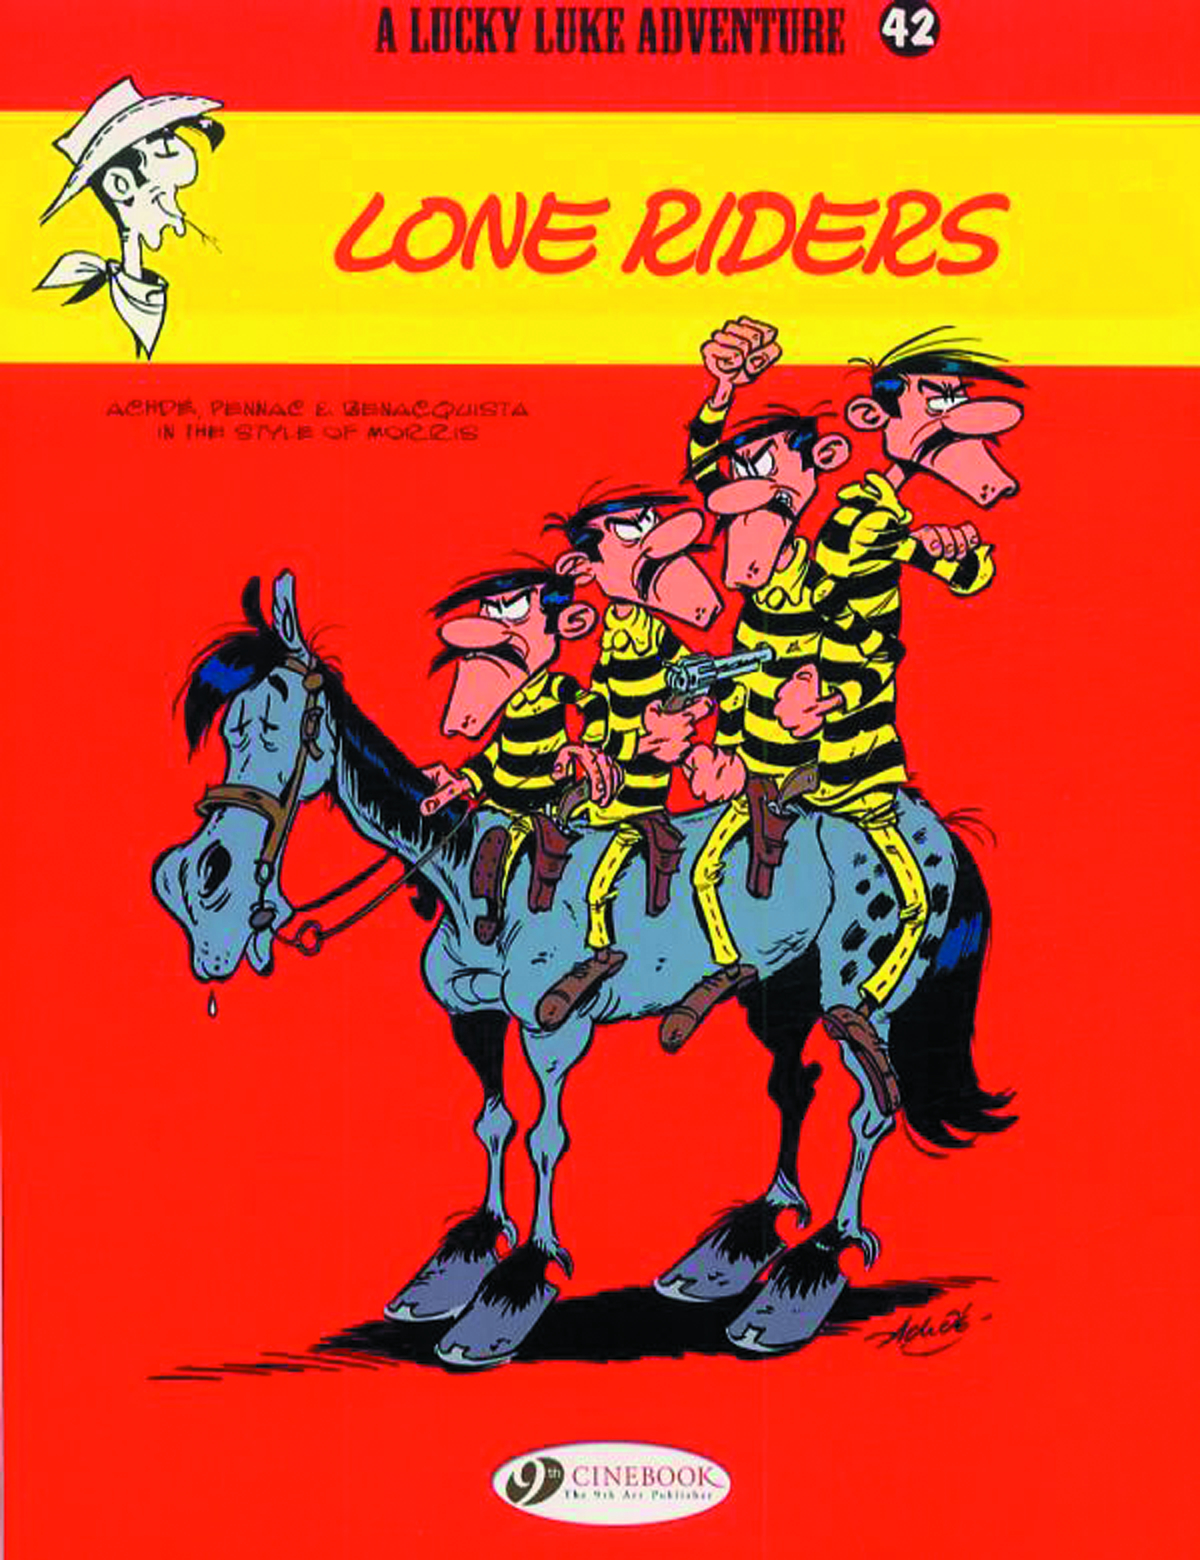 LUCKY LUKE TP VOL 42 LONE RIDERS